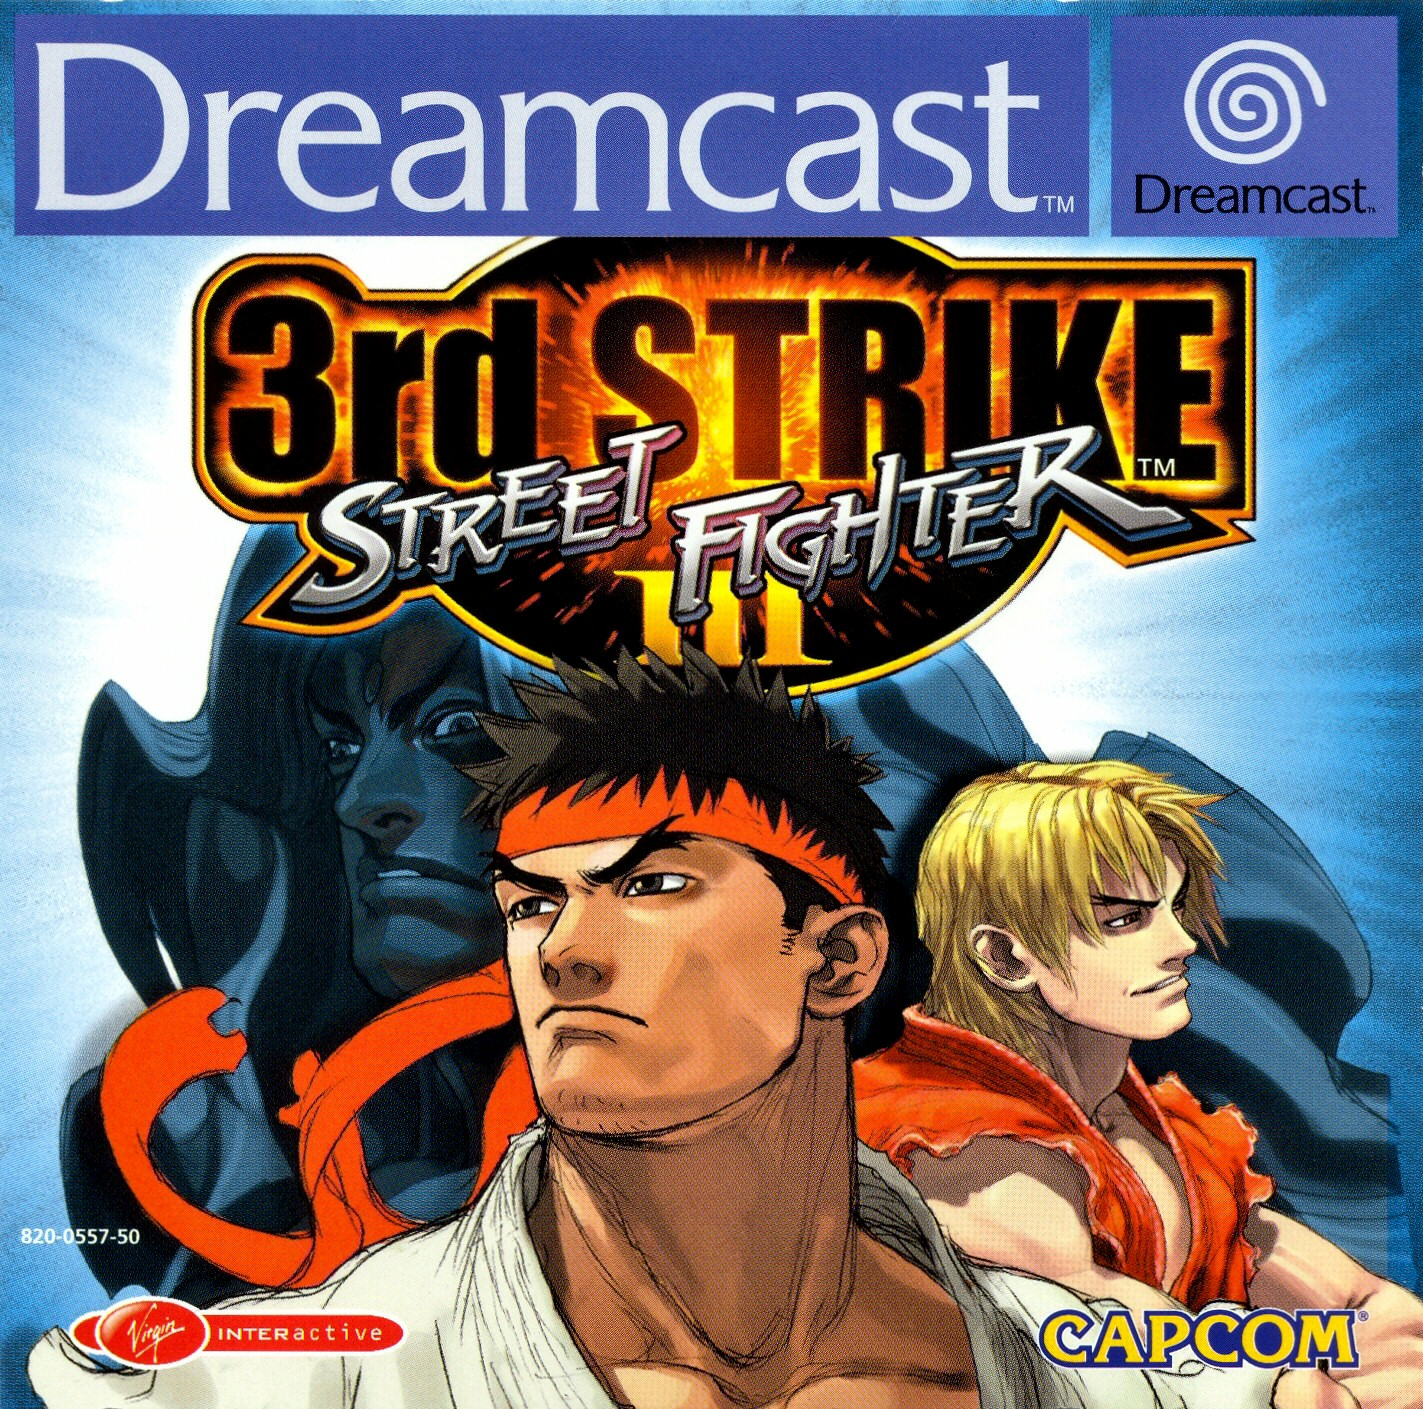 Street-Fighter-III---3rd-Strike-PAL-DC-front - Street-Fighter-III